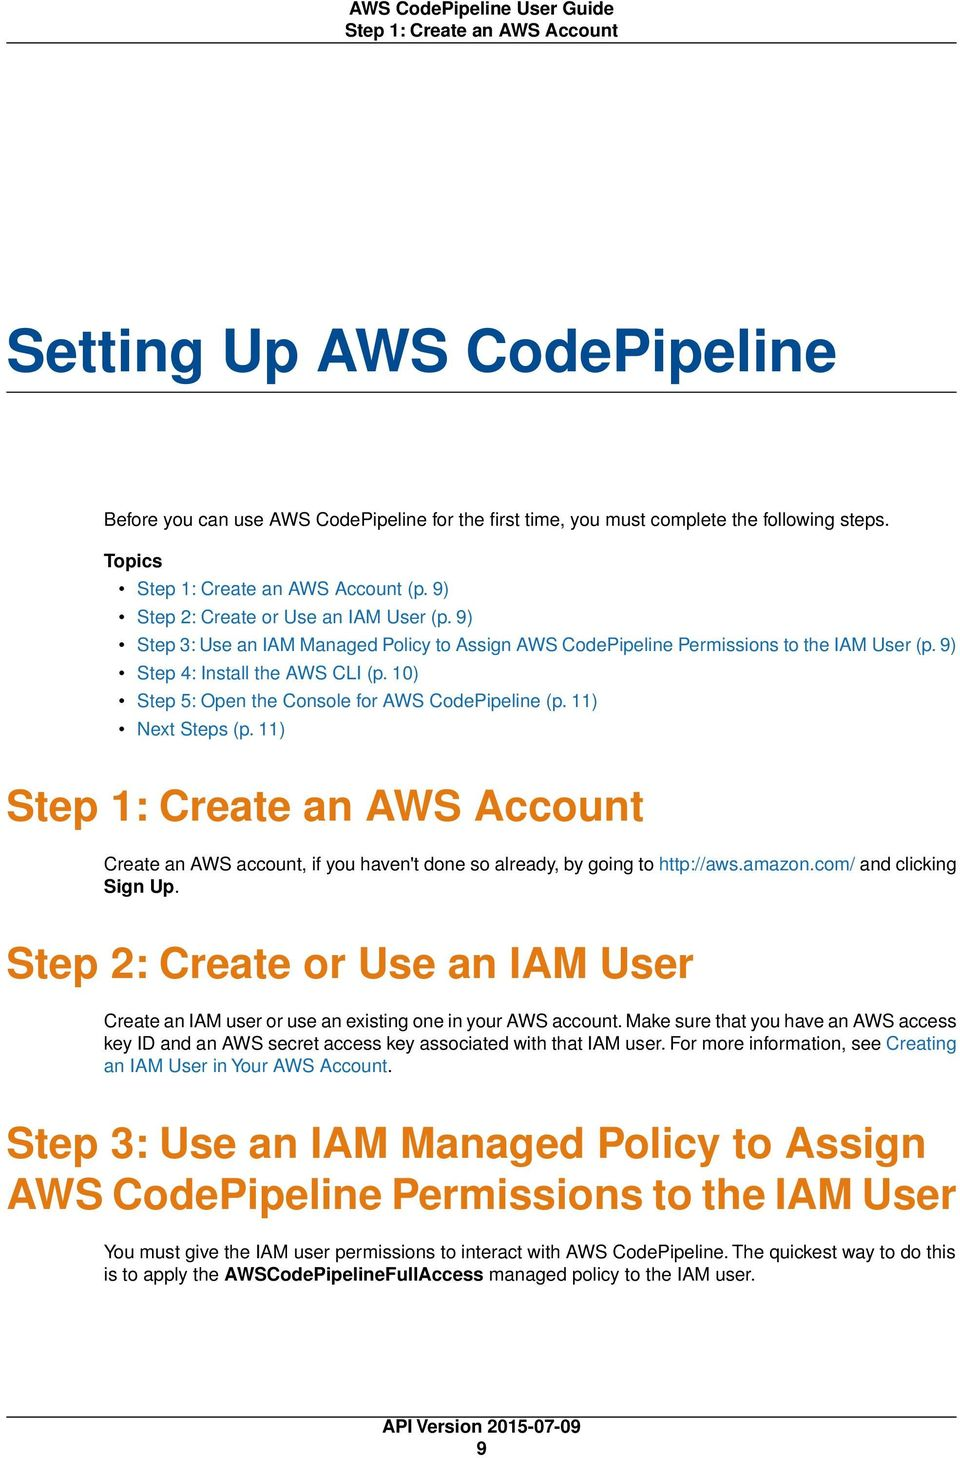 10) Step 5: Open the Console for AWS CodePipeline (p. 11) Next Steps (p. 11) Step 1: Create an AWS Account Create an AWS account, if you haven't done so already, by going to http://aws.amazon.